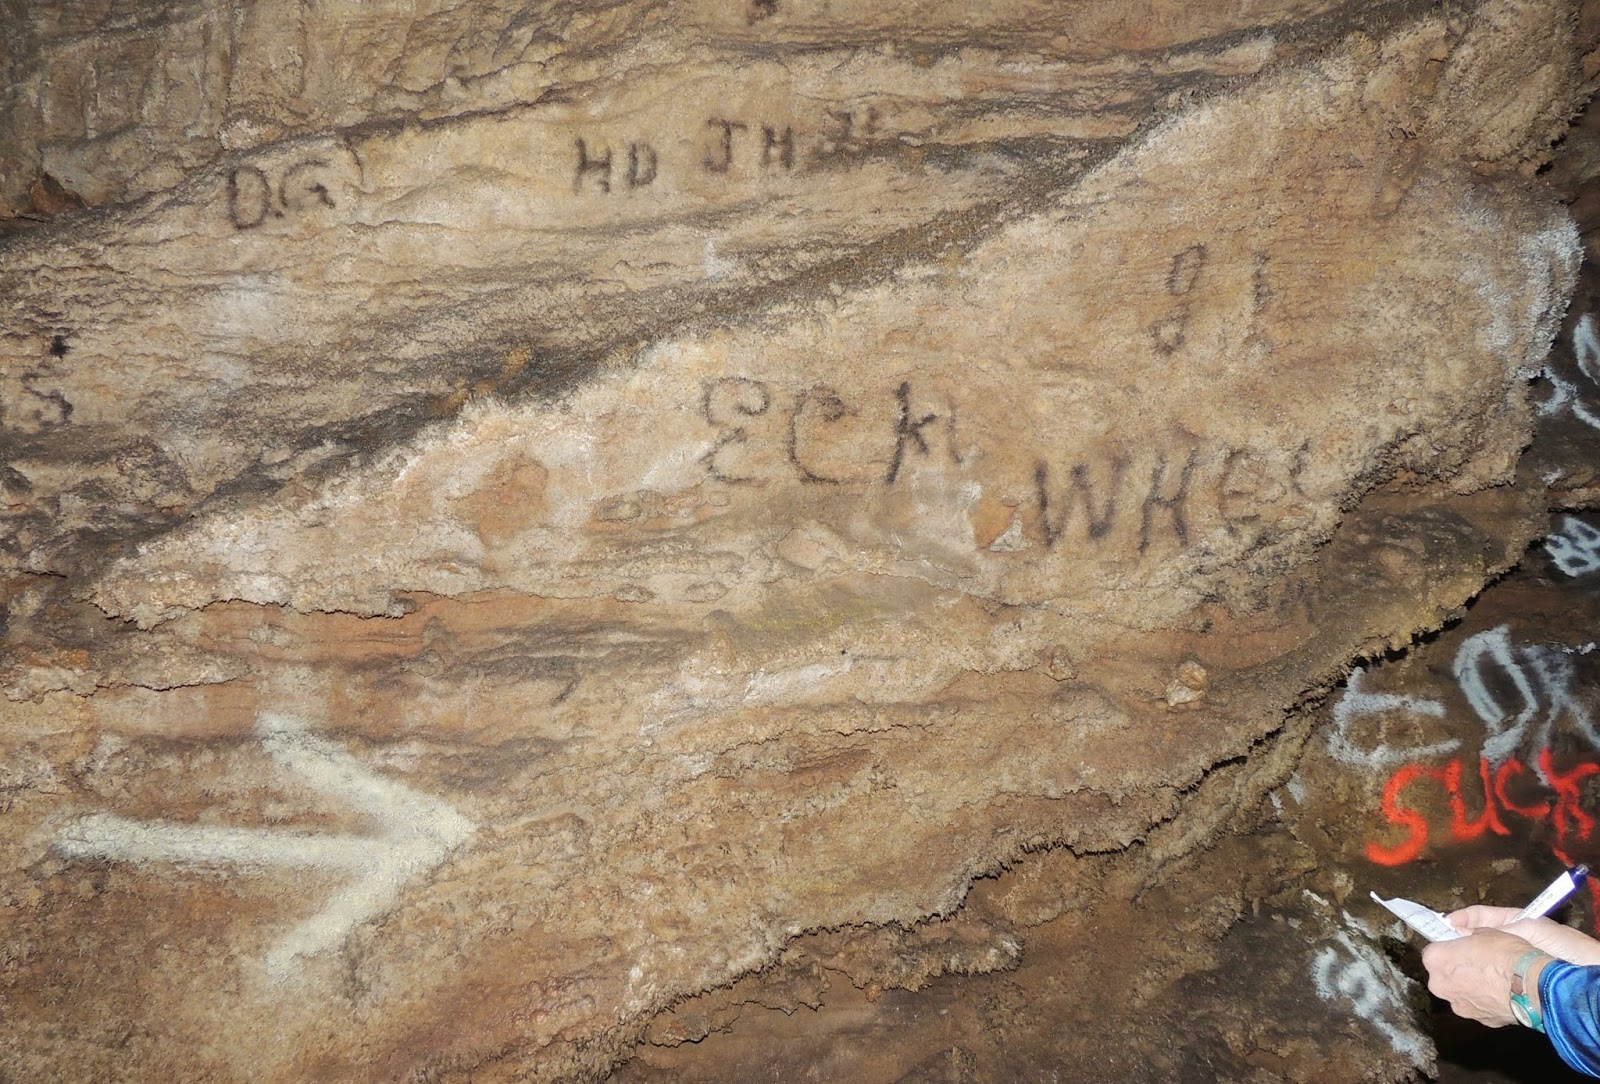 heat in the form of carbide lamps and evidently had no compunction against sooting their names and dates on the cave s walls photo by steve bailey